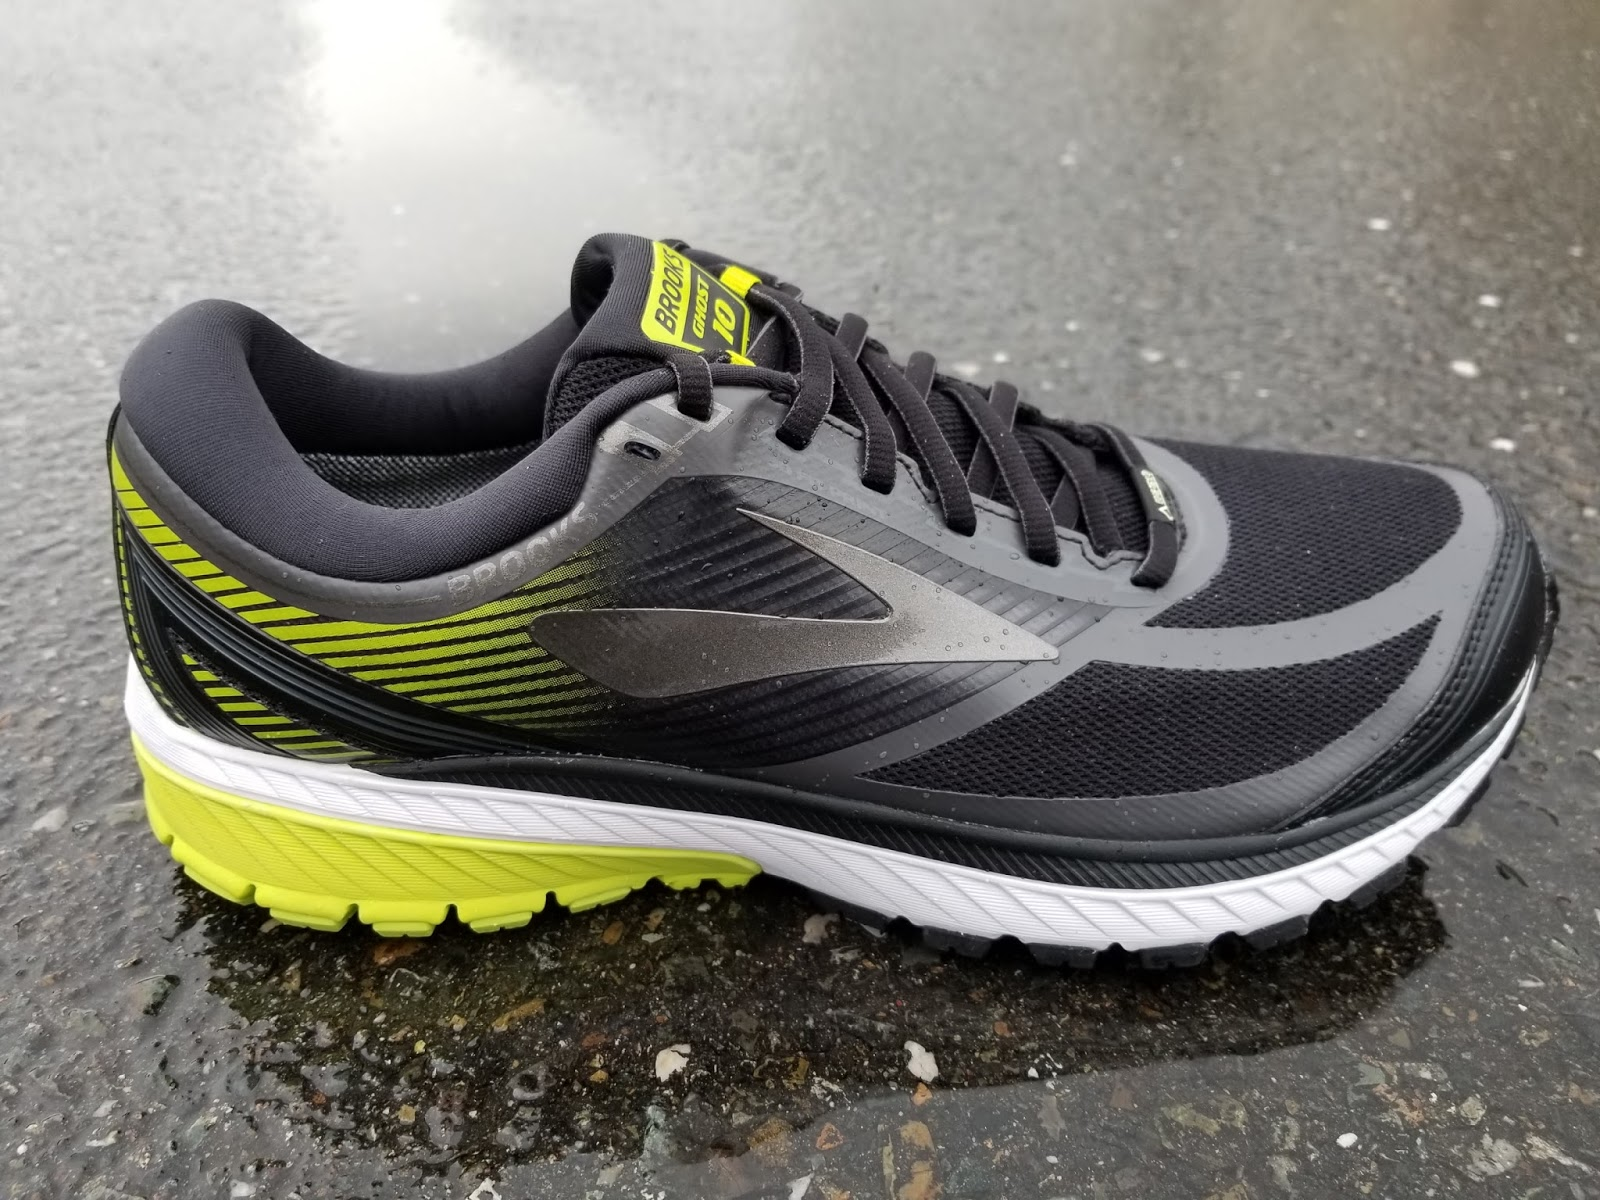 fad1a3f3134 Both the Ghost 10 and Ghost 10 GTX have soft cushioning which uses Brooks  BioMoGo DNA midsole that adapts to your stride.